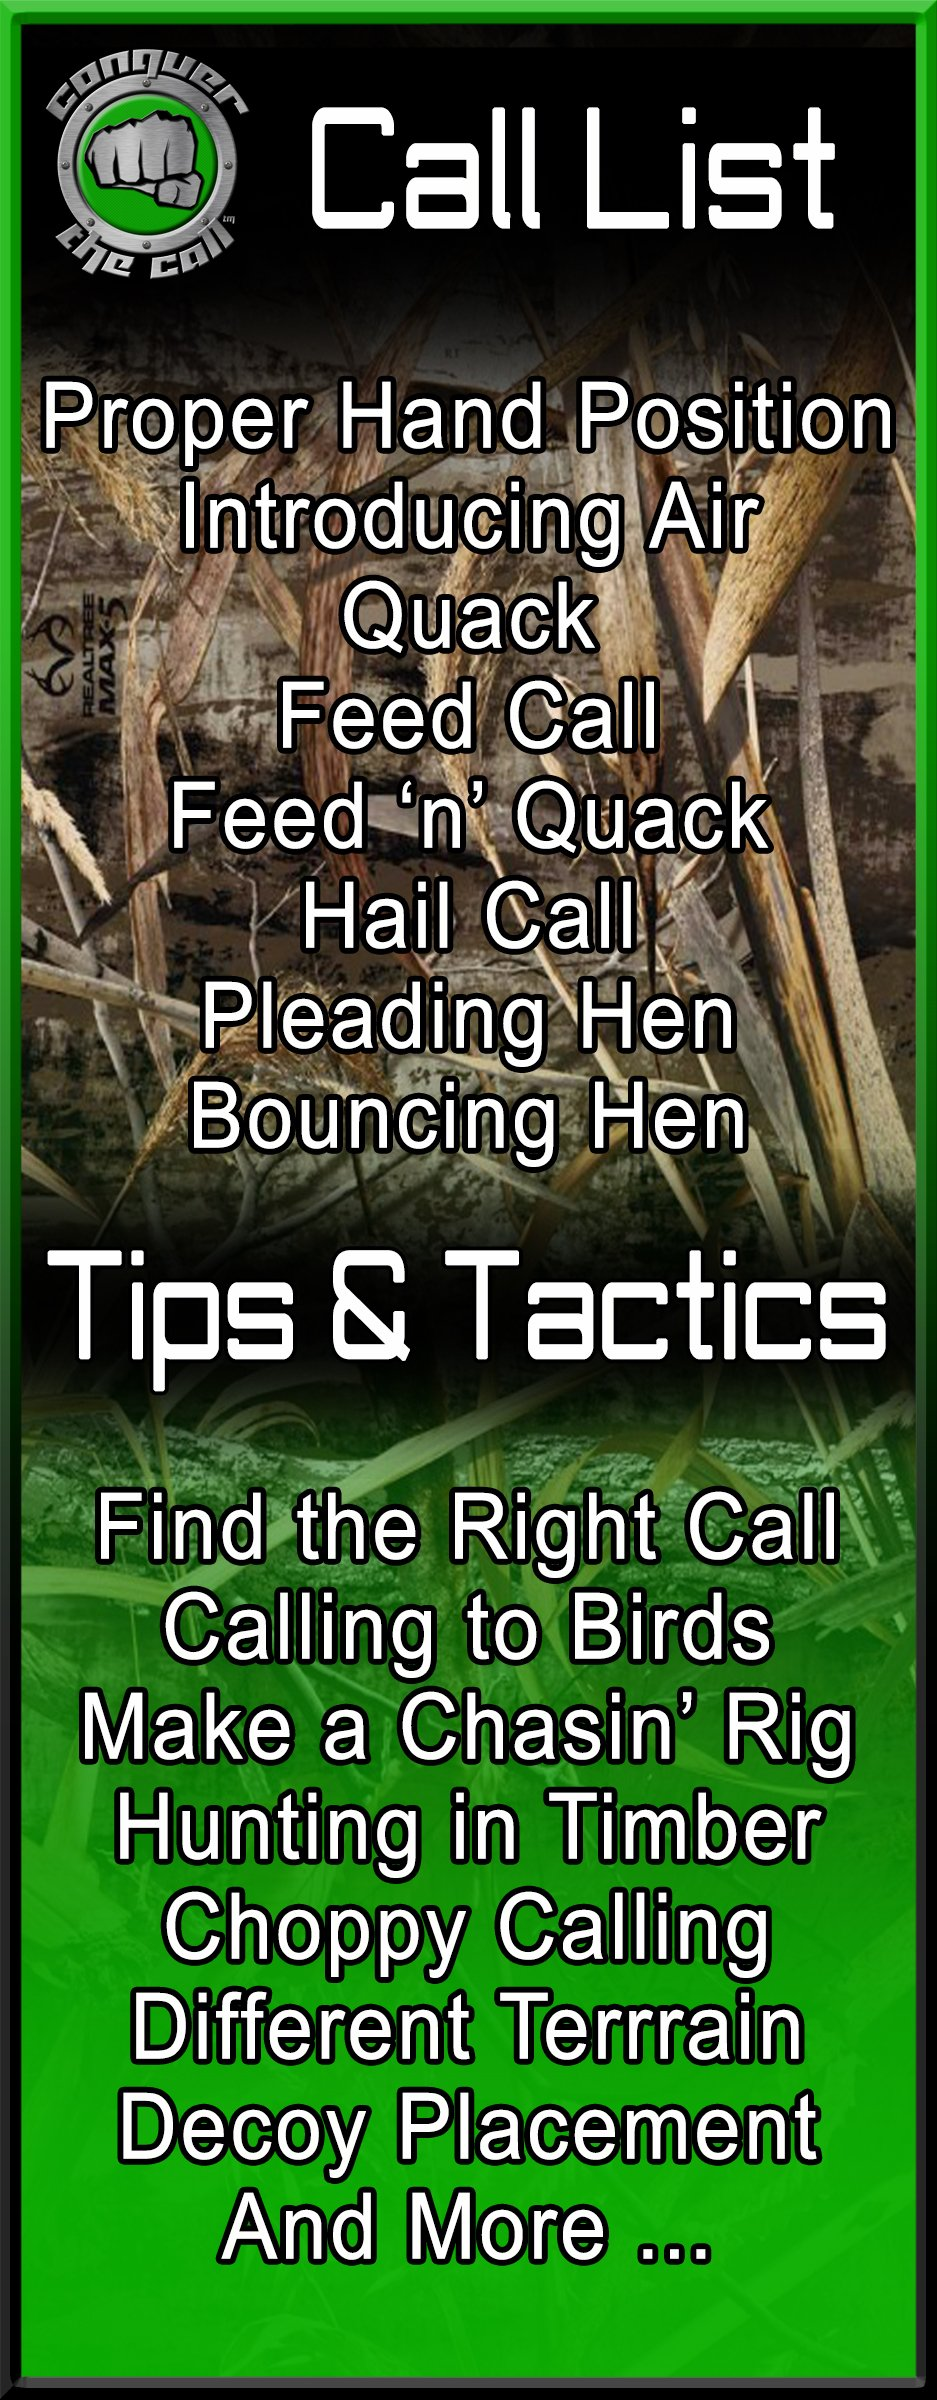 Conquer The Call Duck Call Interactive Software by DYNAMIC OUTDOOR CONCEPTS (Image #3)